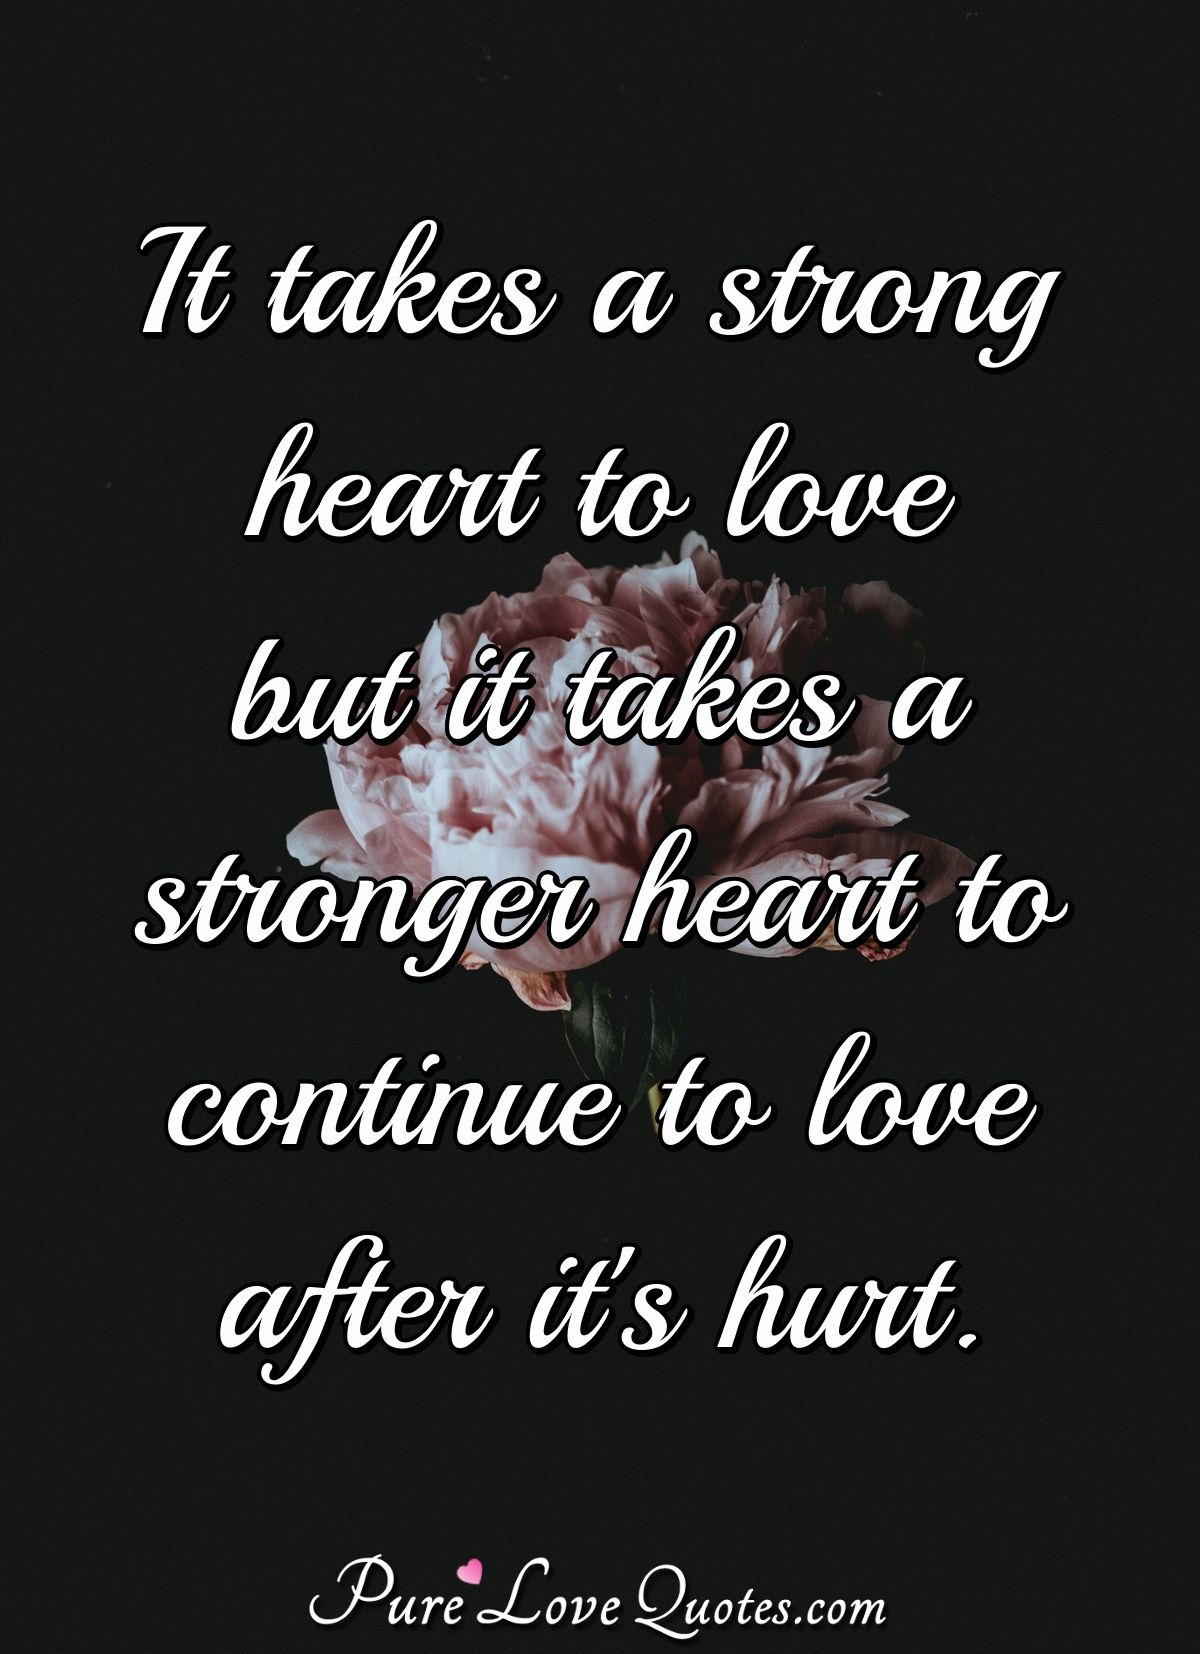 It takes a strong heart to love but it takes a stronger heart to continue to love after it's hurt. - Anonymous